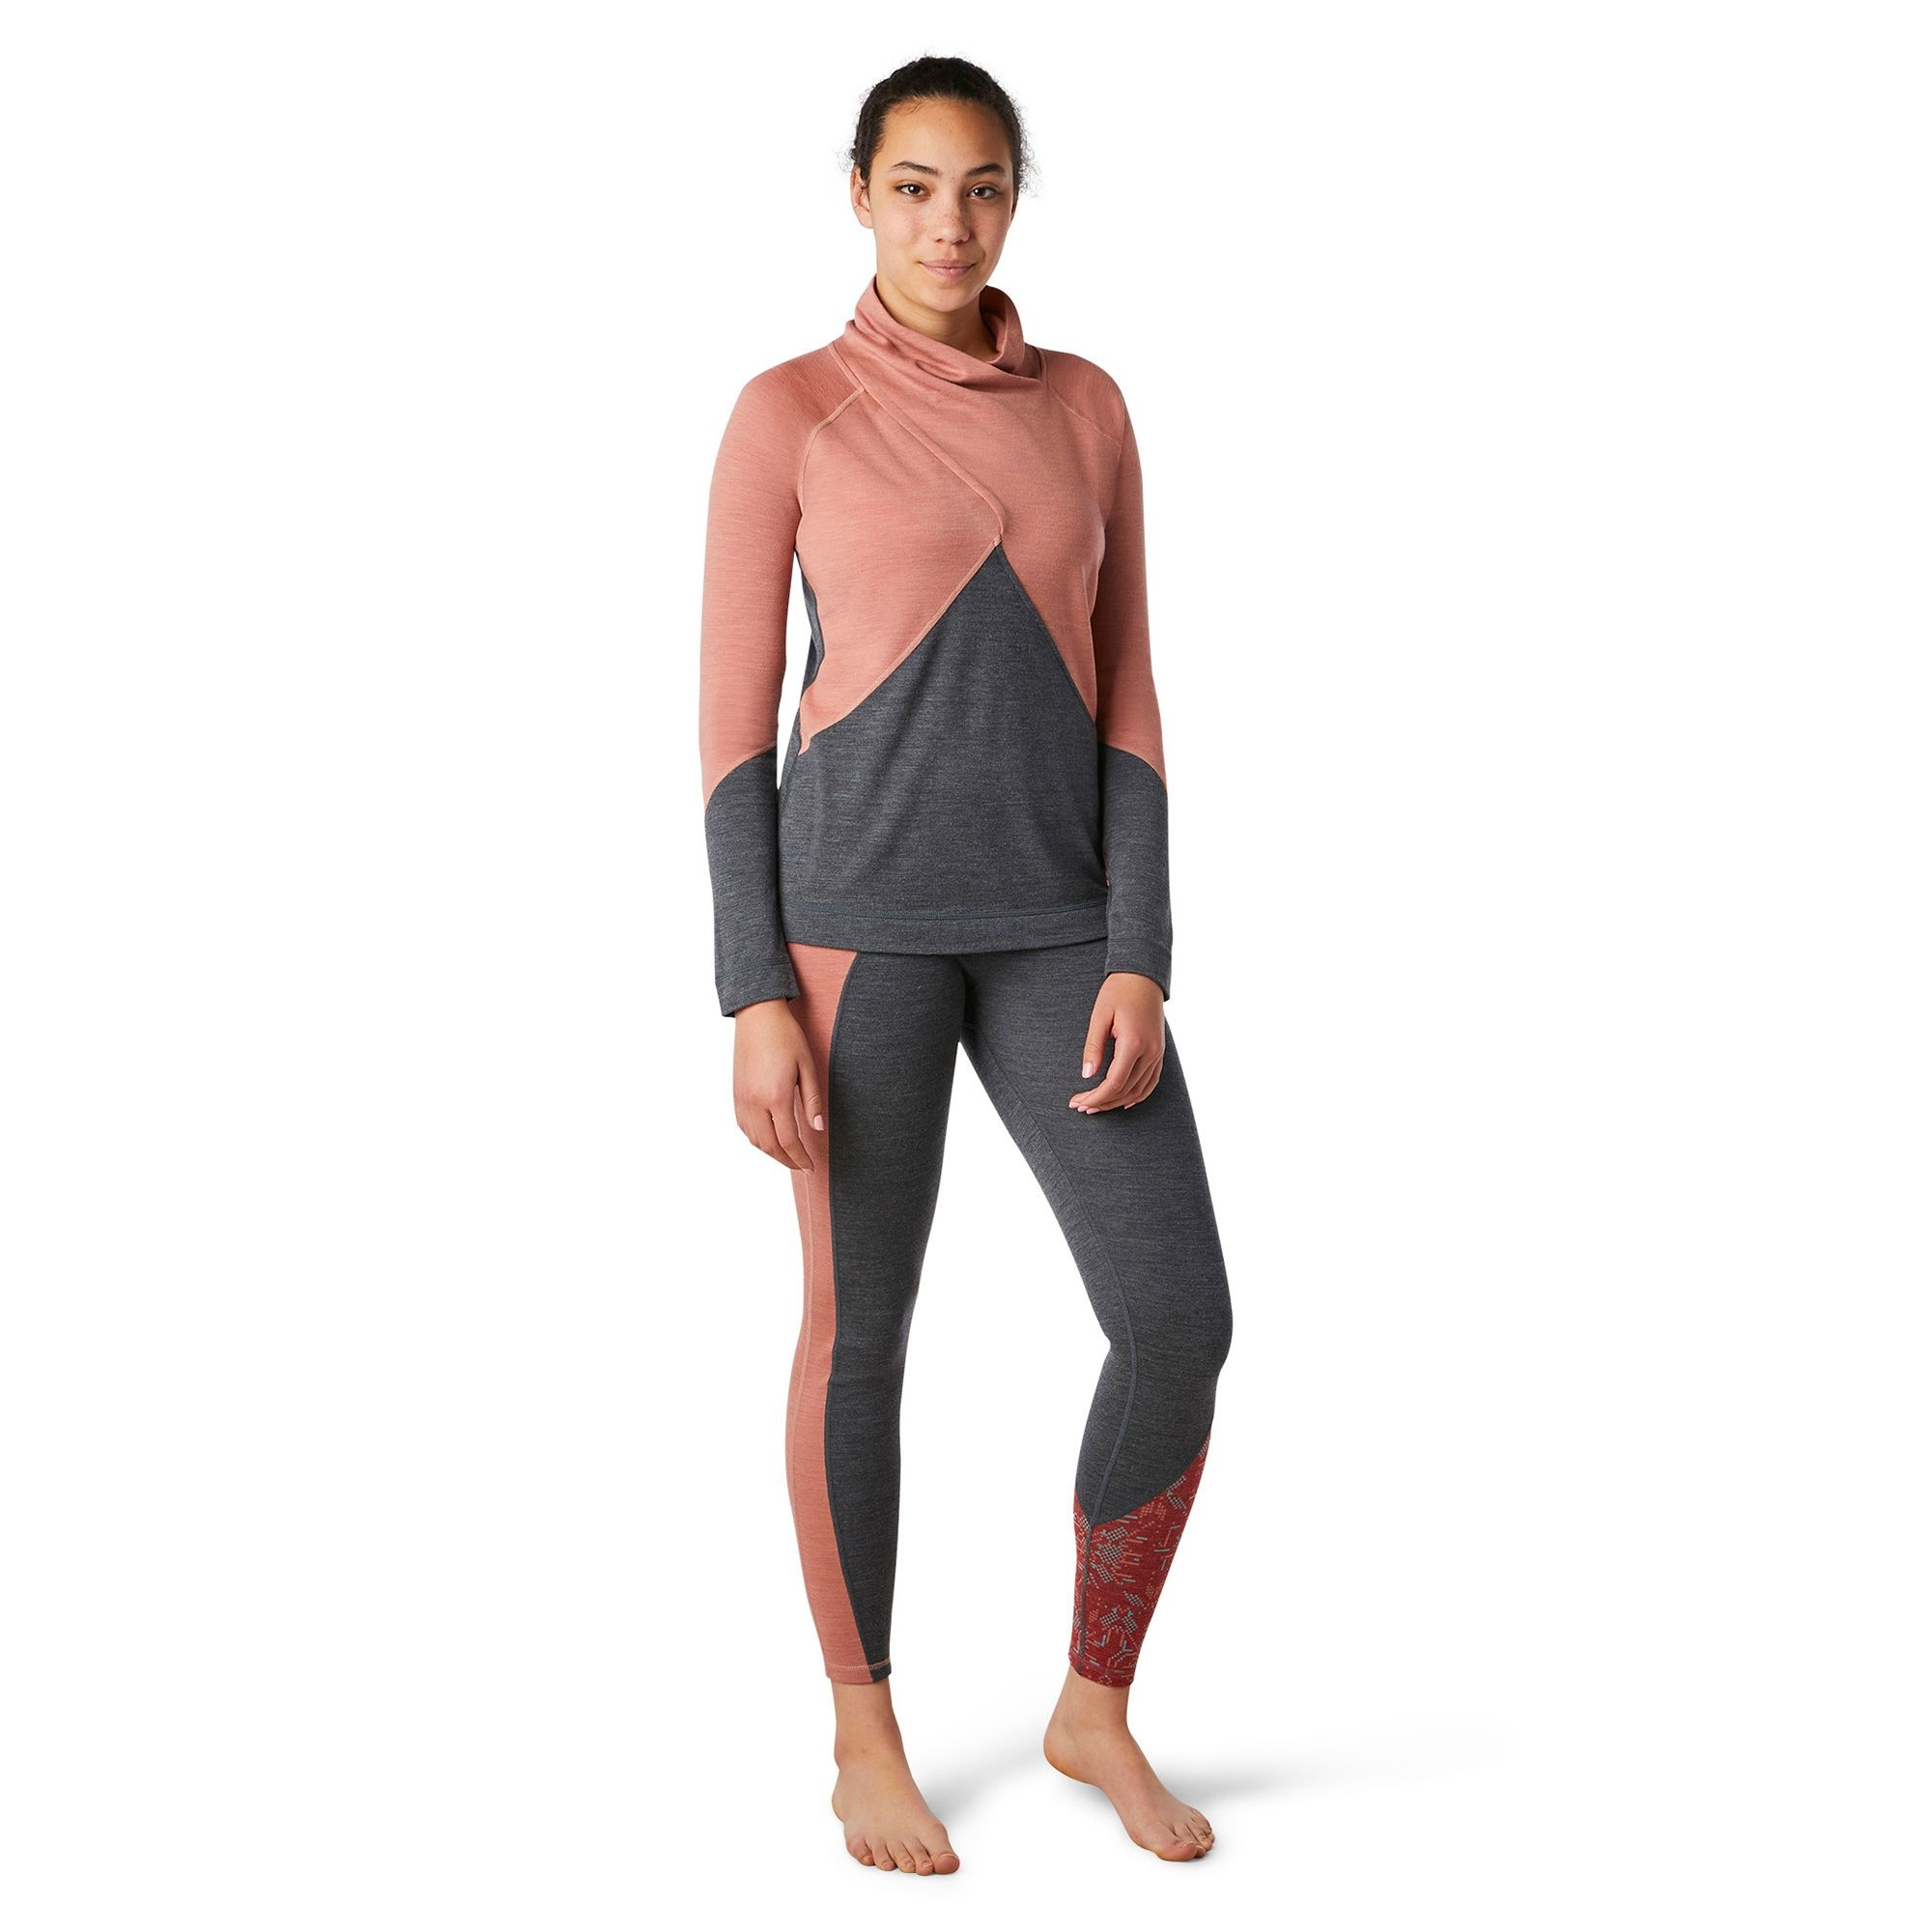 Smartwool Merino 250 Crossover Neck, Canyon Rose